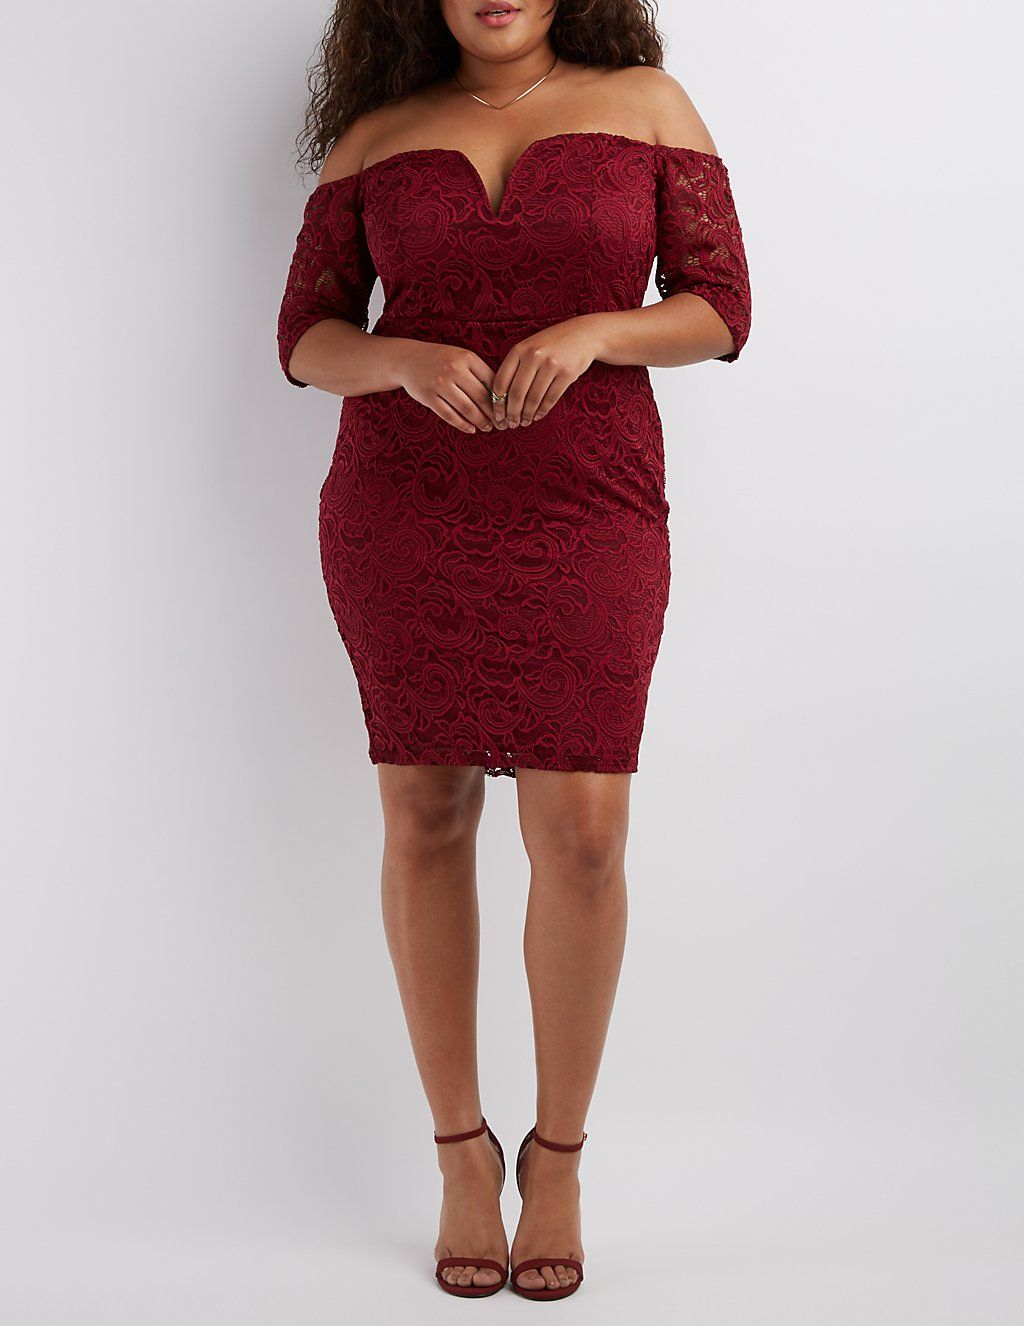 Red bodycon dress charlotte russe